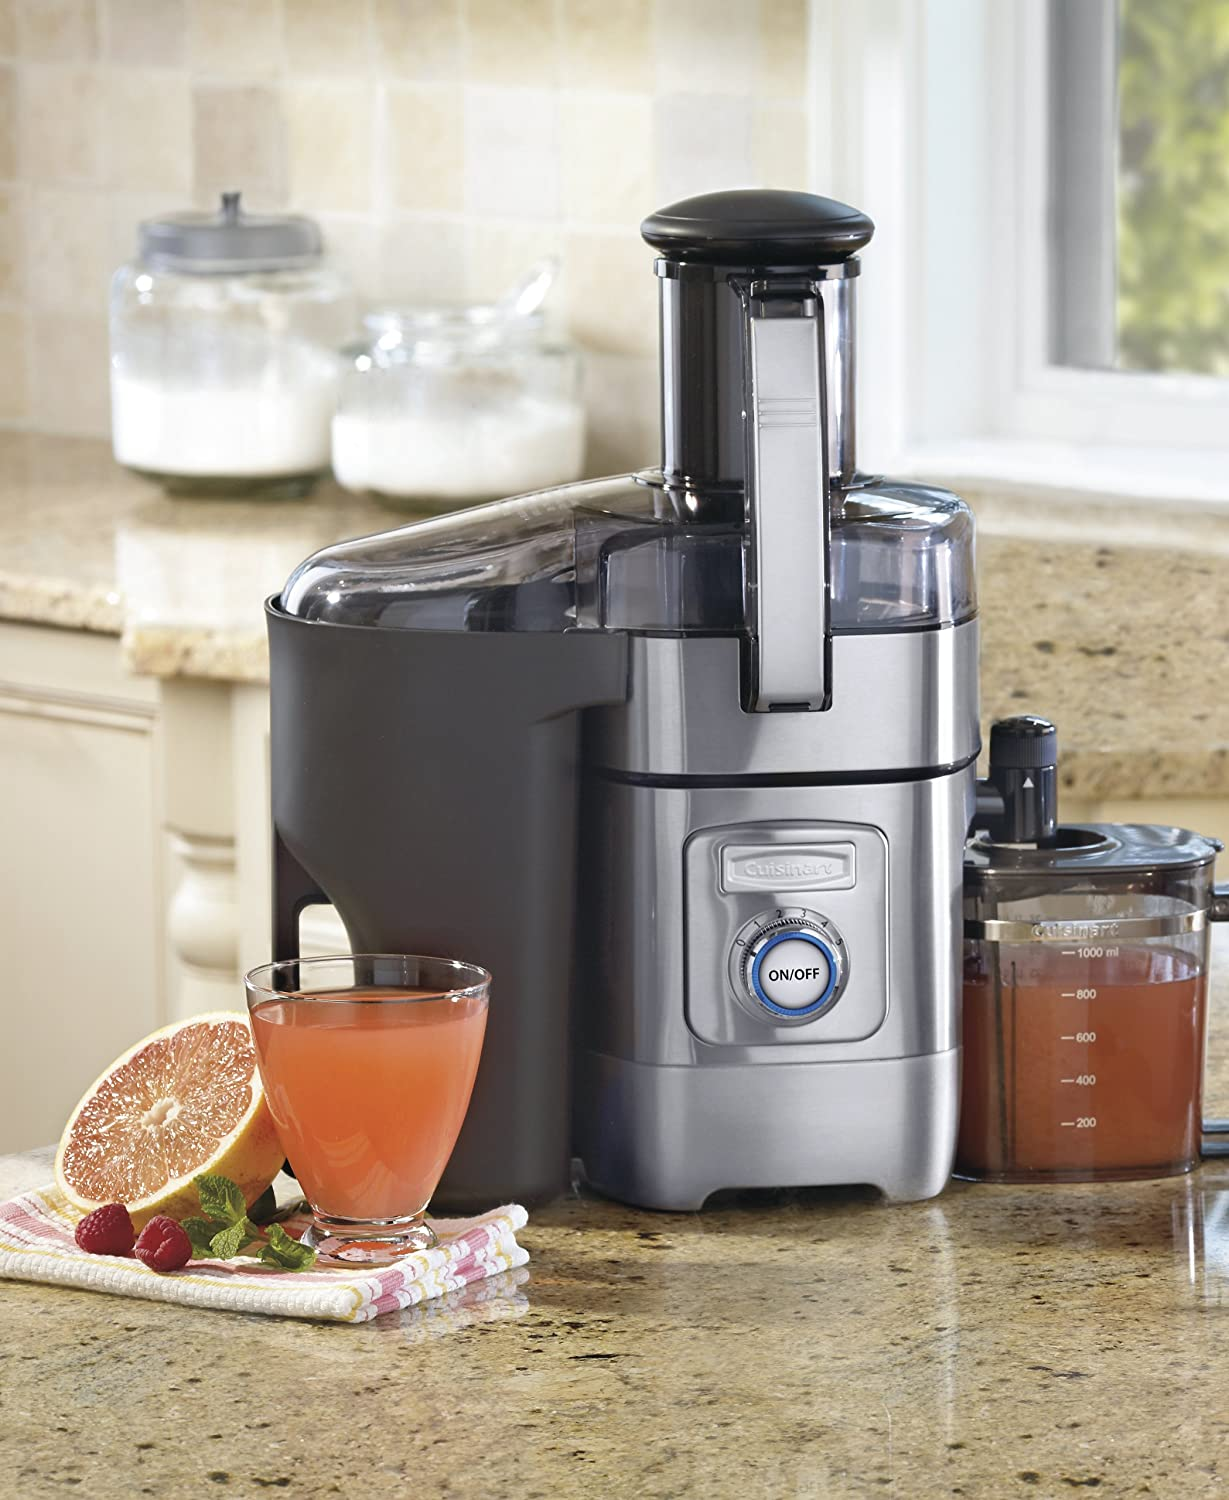 Cuisinart juicer - best juice extractor for multi-purpose use